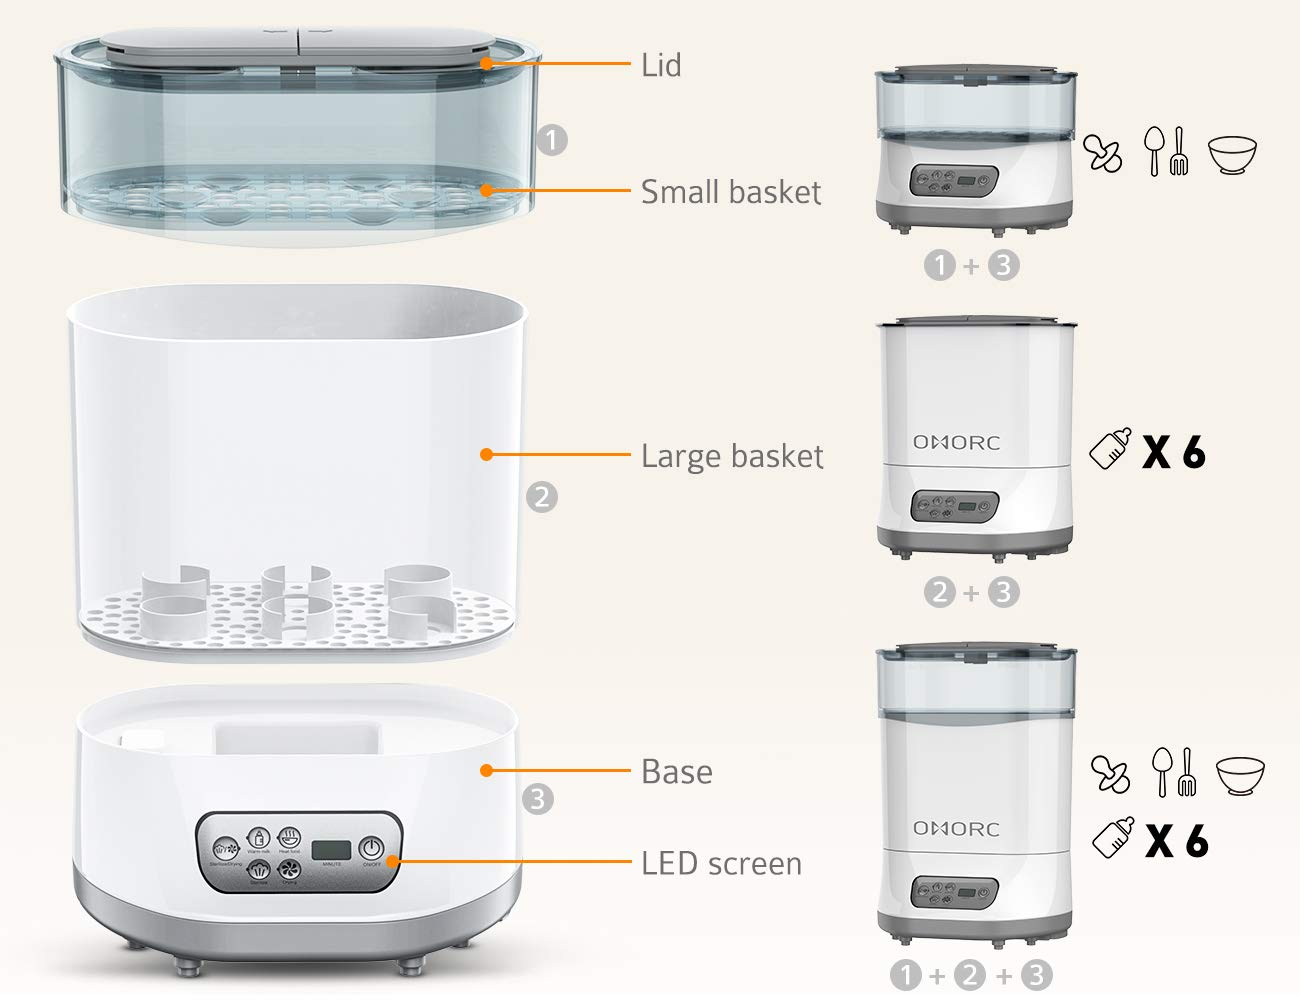 OMORC 550W Bottle Sterilizer and Dryer for Baby, 5-in-1 Multifunctional Electric Steam Sterilizer with Auto Power-off, Digital LCD Display for Sterilizing, Drying, Warming Milk, Heating Food by OMORC (Image #6)